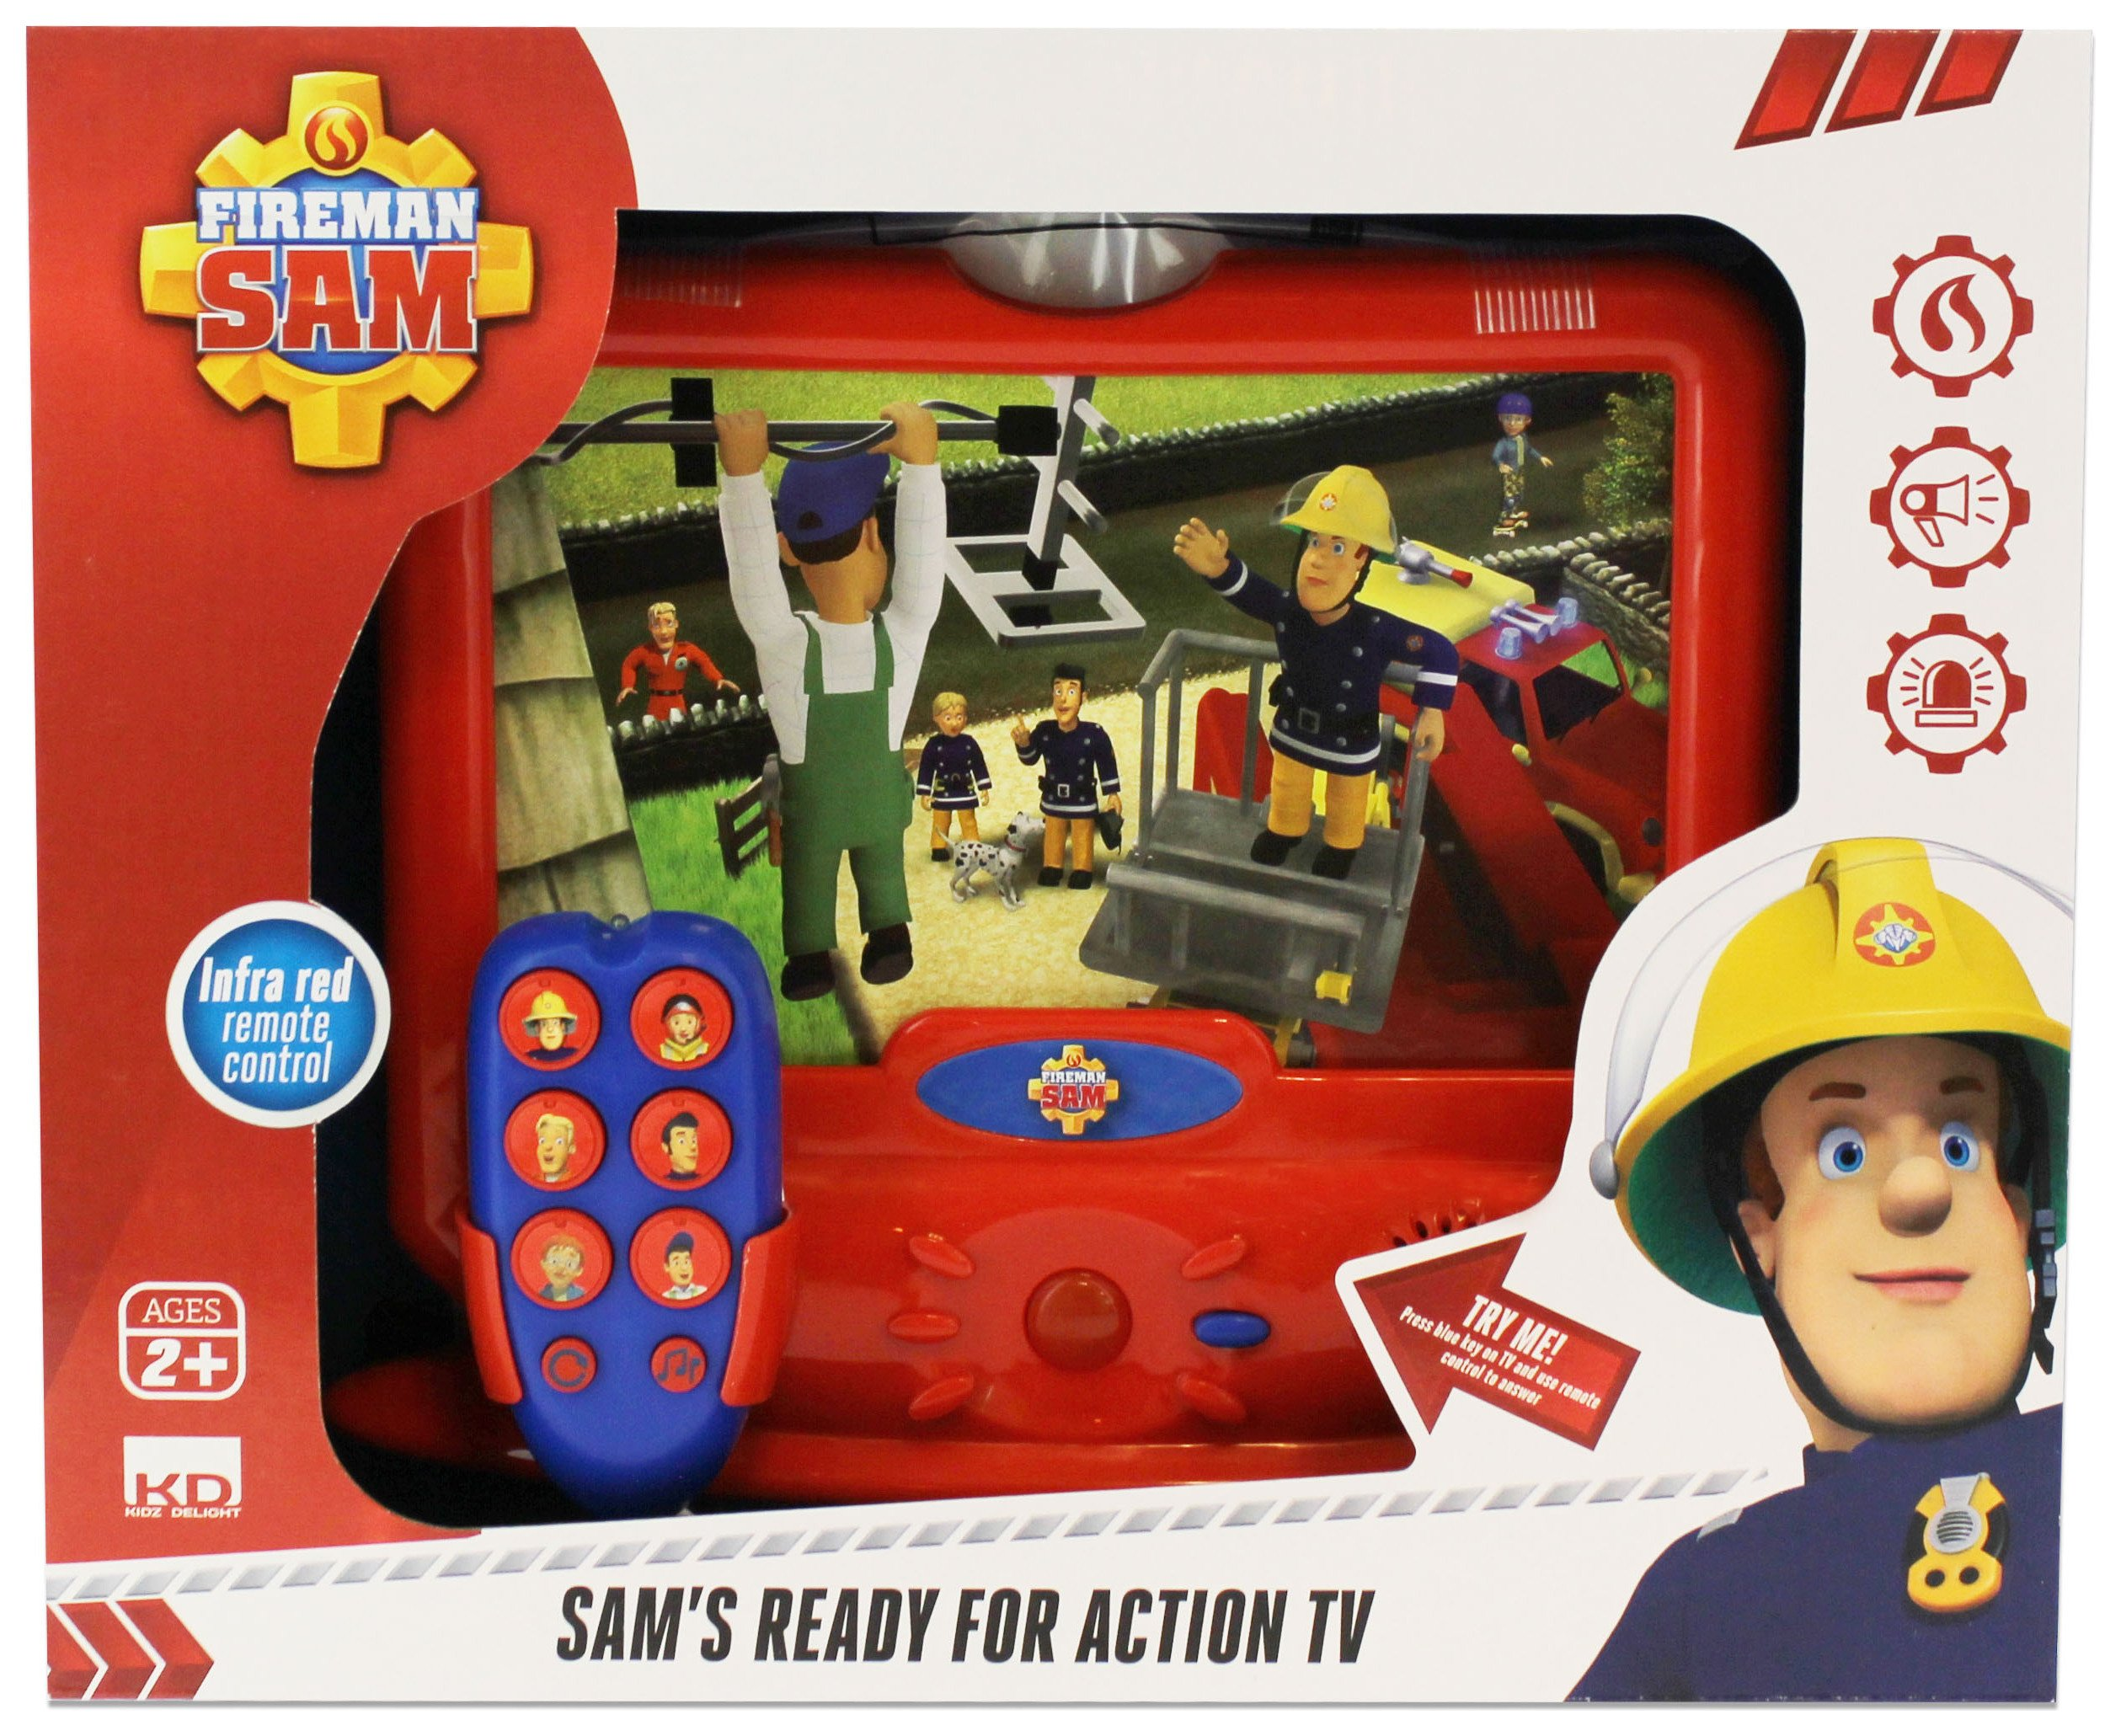 Image of Fireman Sam Ready For Action TV.